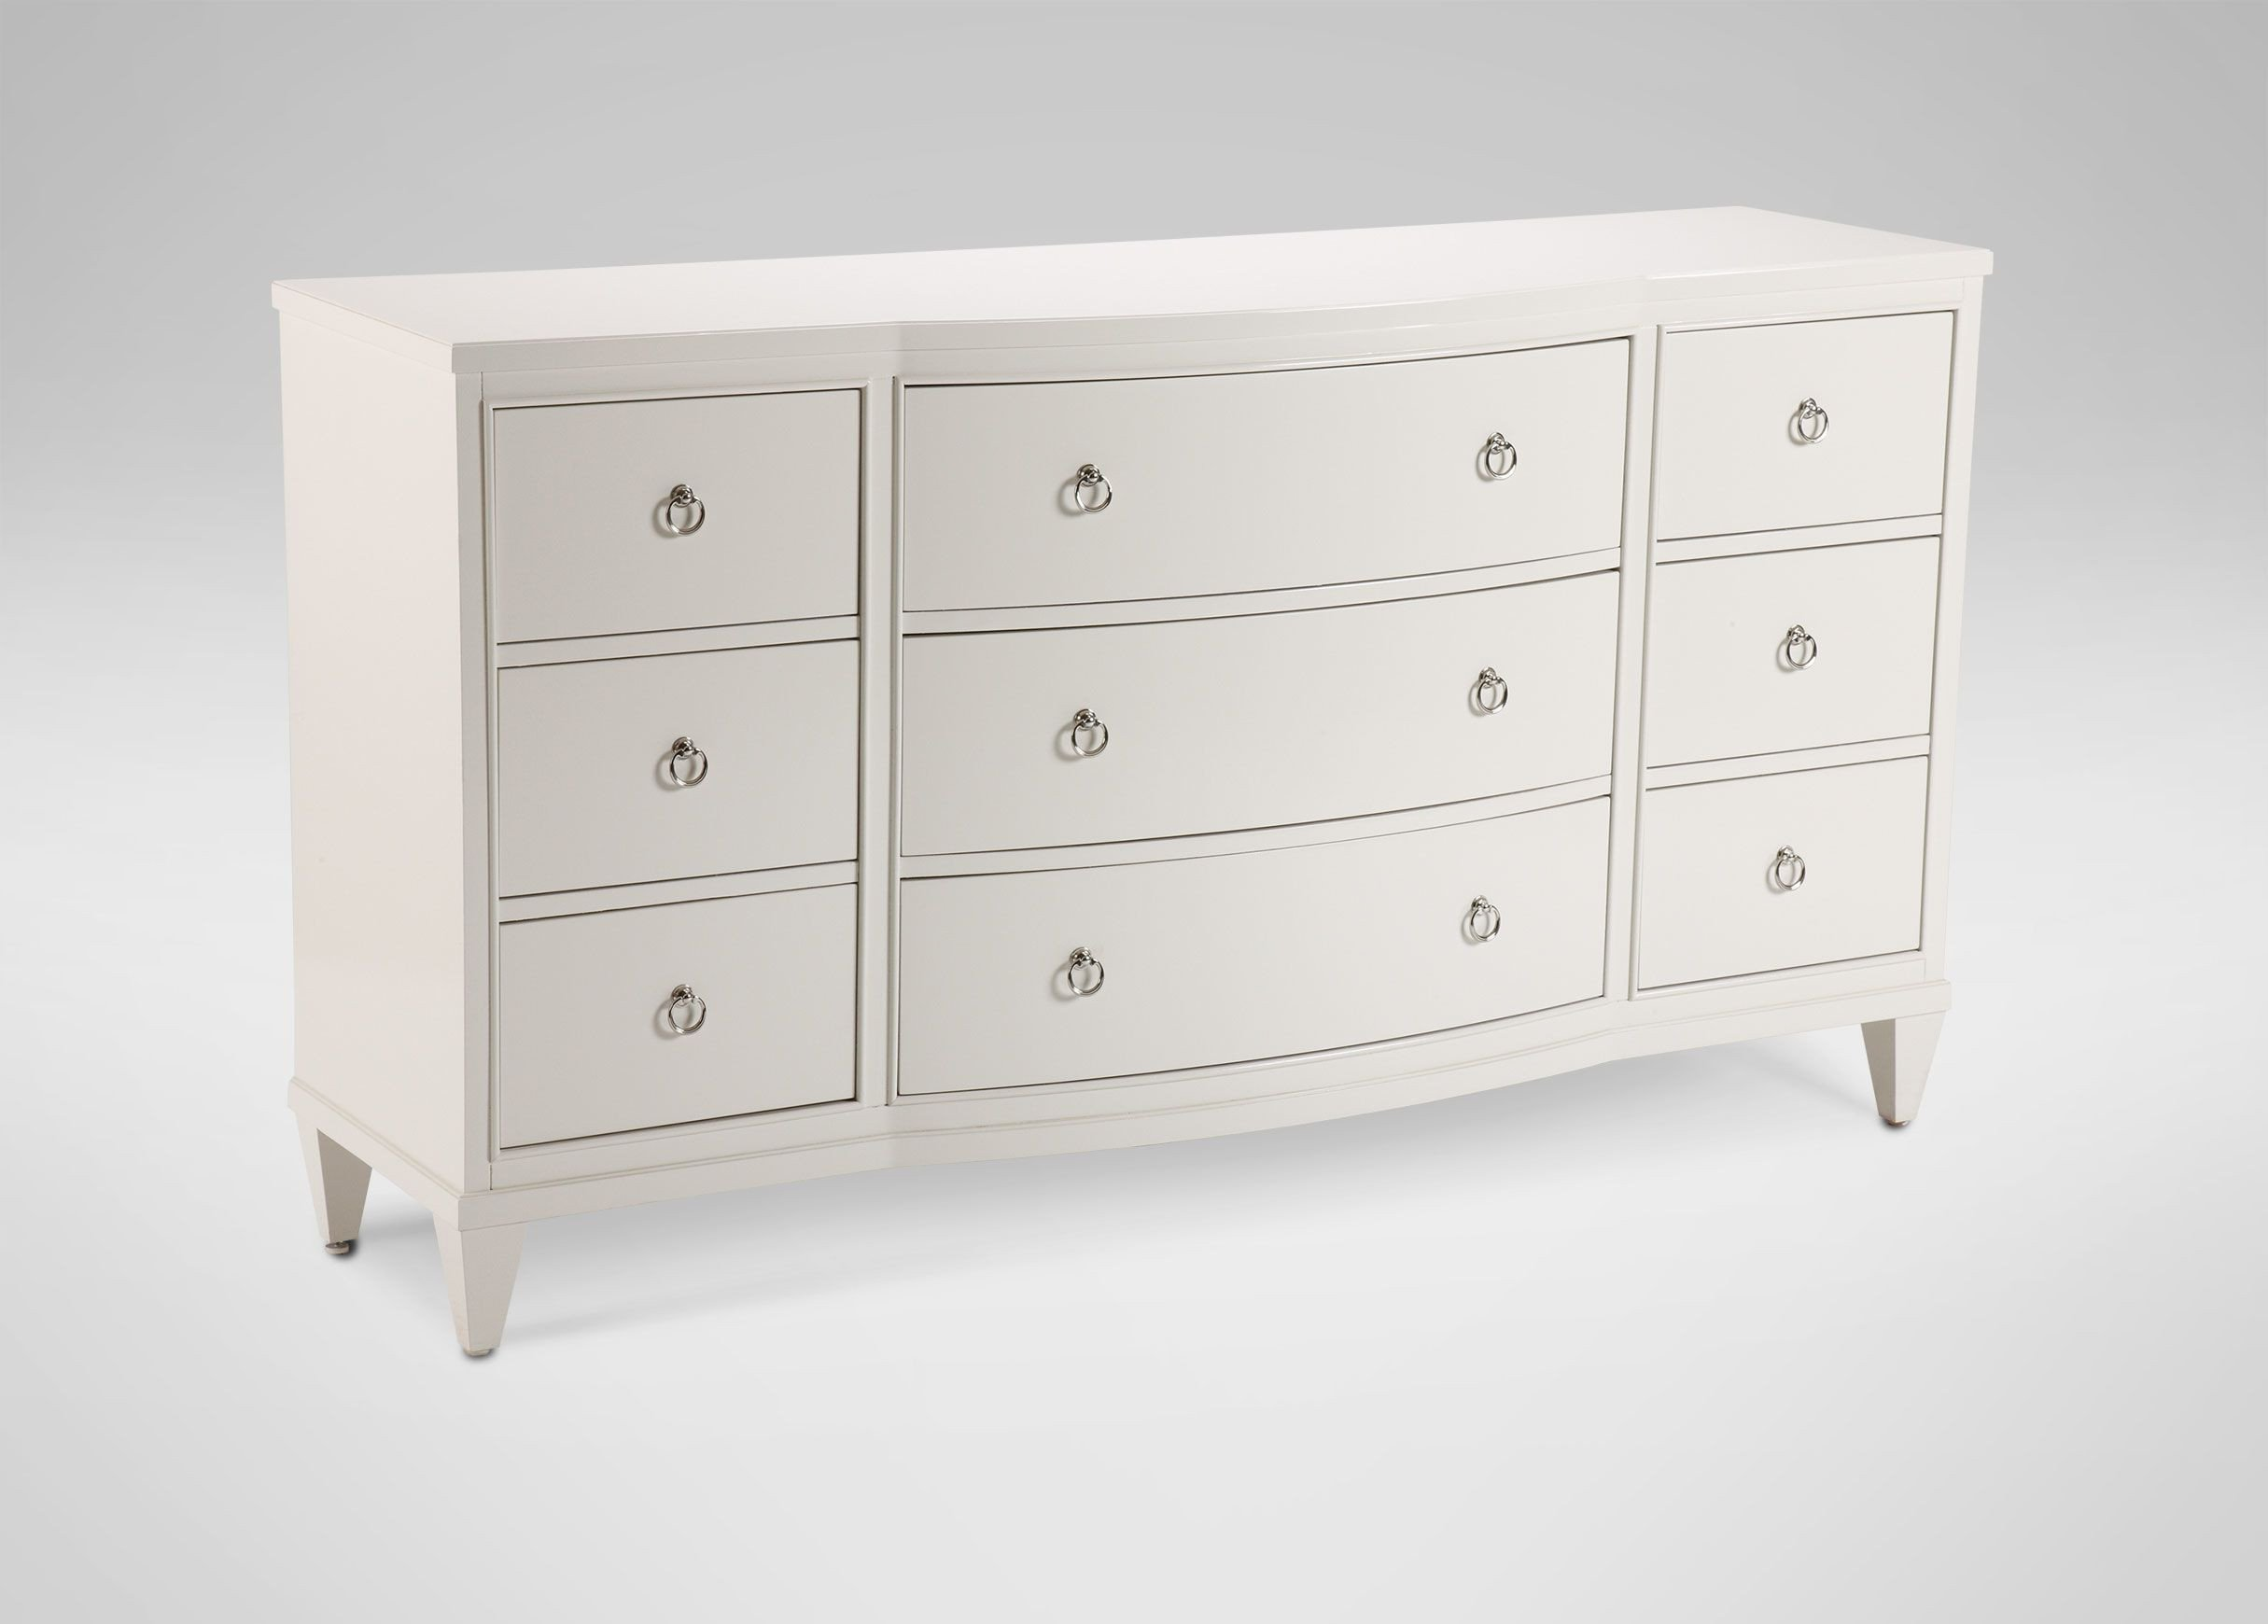 Bedroom Dressers for Sale Unique Ethan Allen Heston Dresser ascot 793 Large Gray